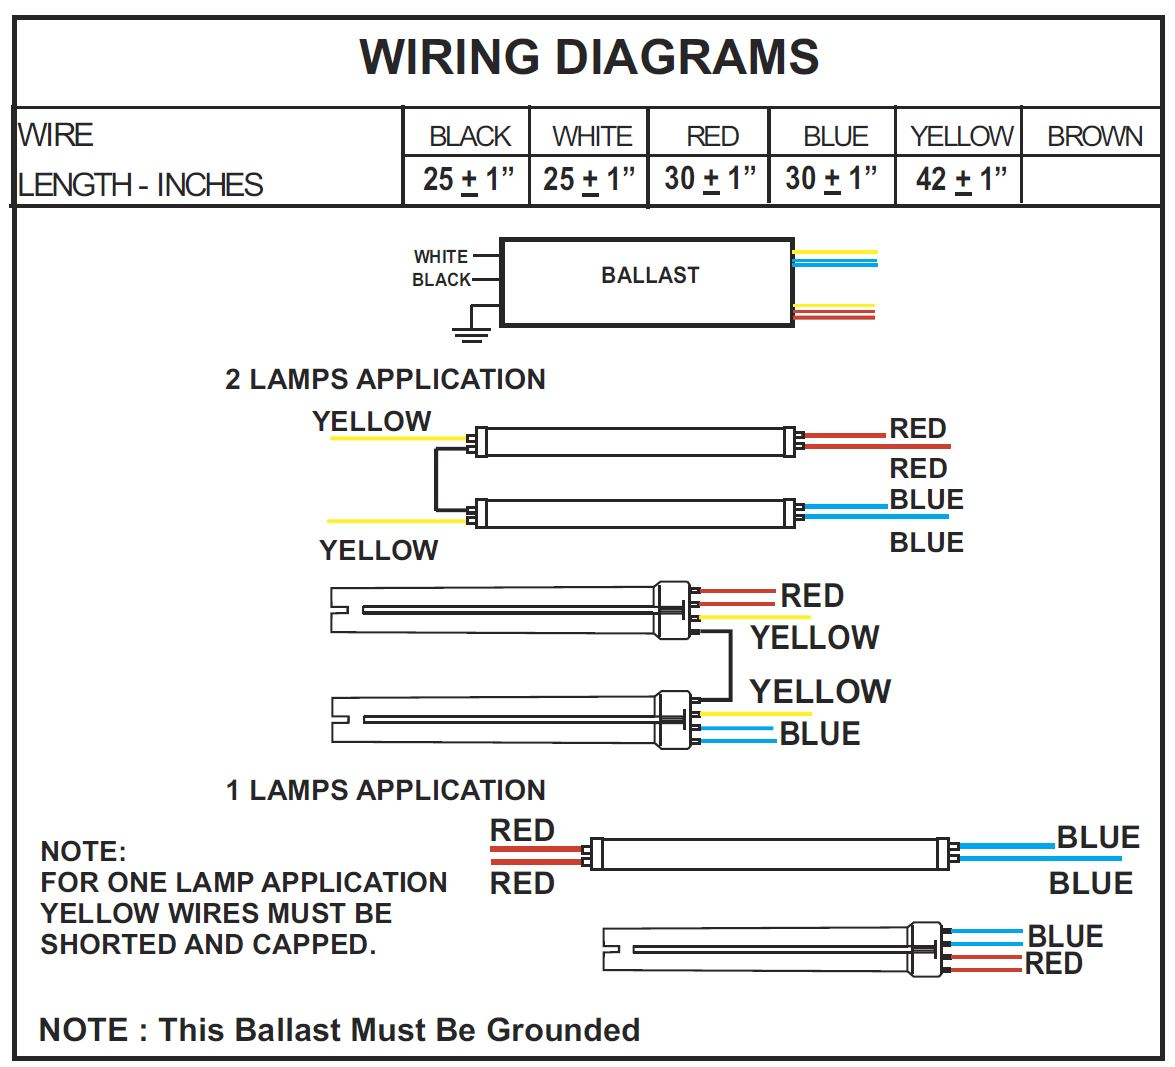 2 lamp t5 multi-purpose electronic ballast | usalight.com lithonia led light ballast wiring diagram 4 light ballast wiring diagram #6